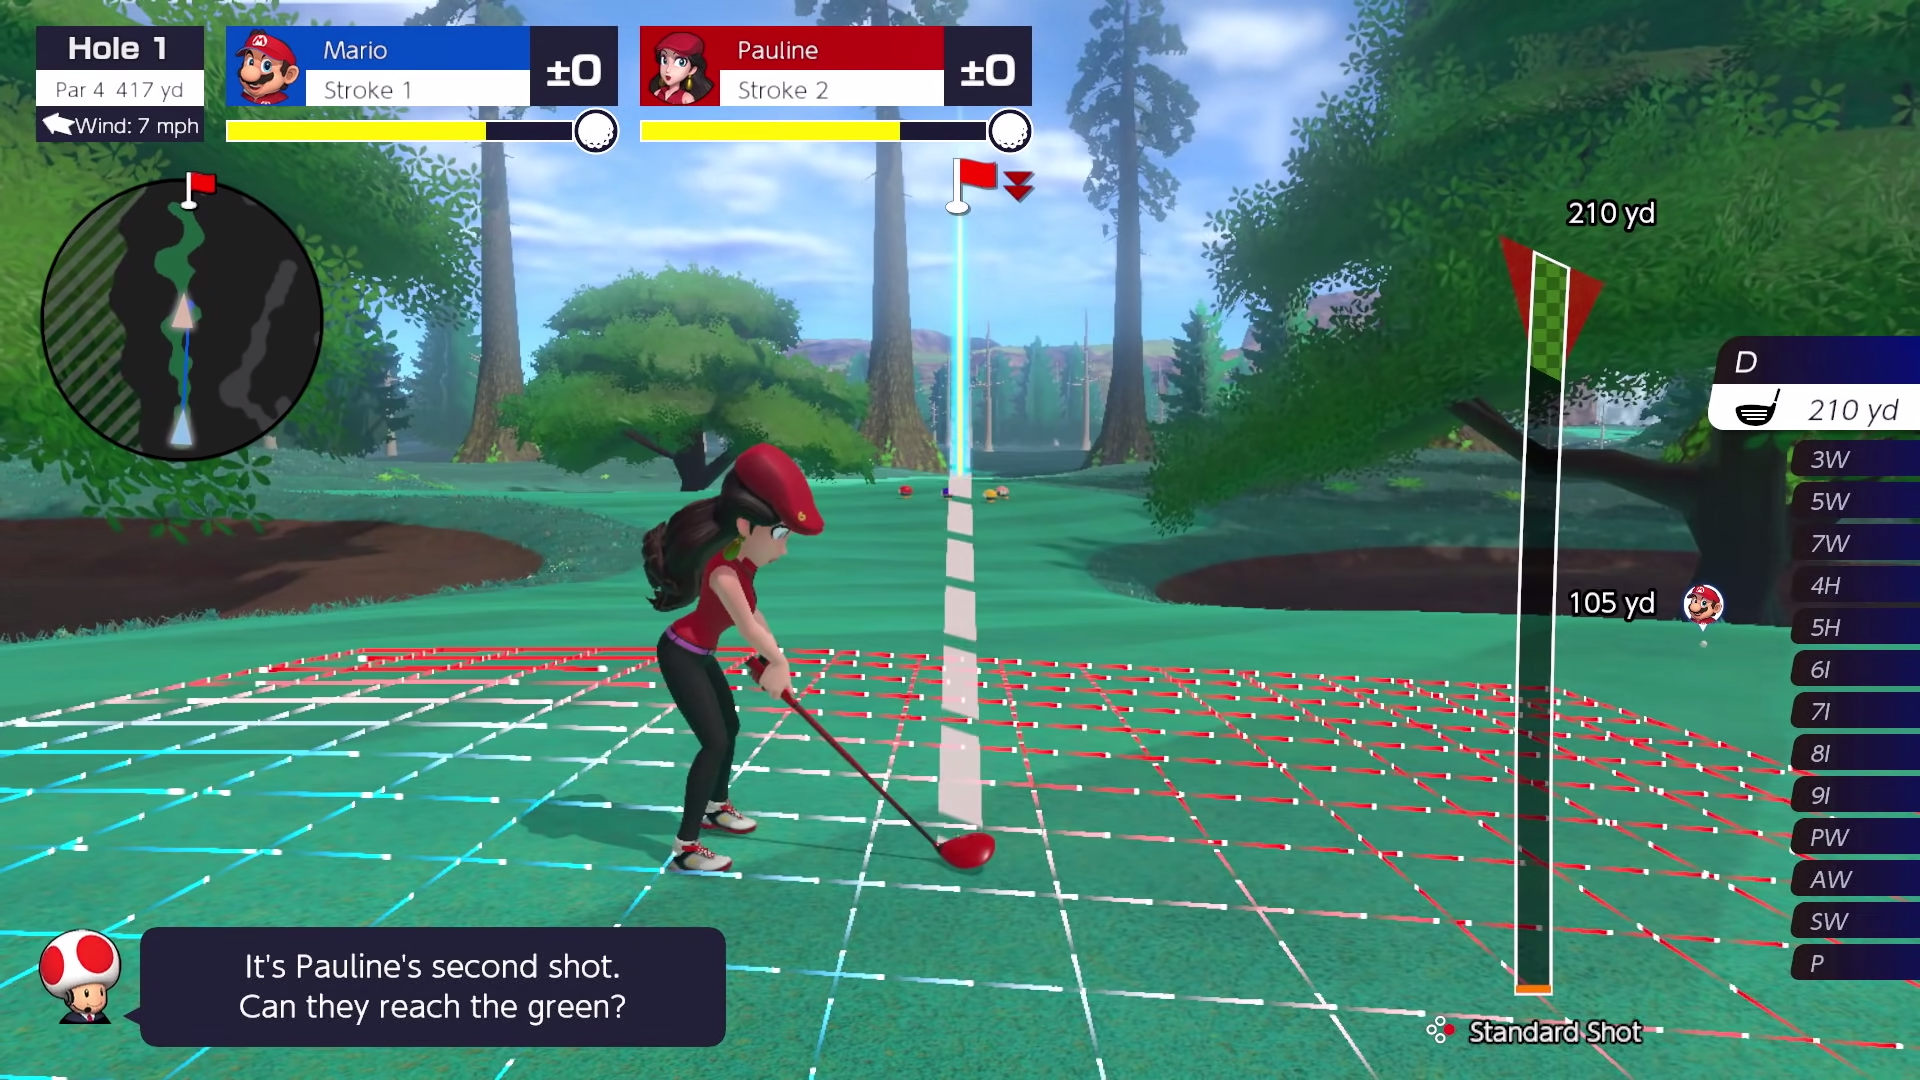 A glimpse at a player about to launch a shot using the gauge on the right of the screen.